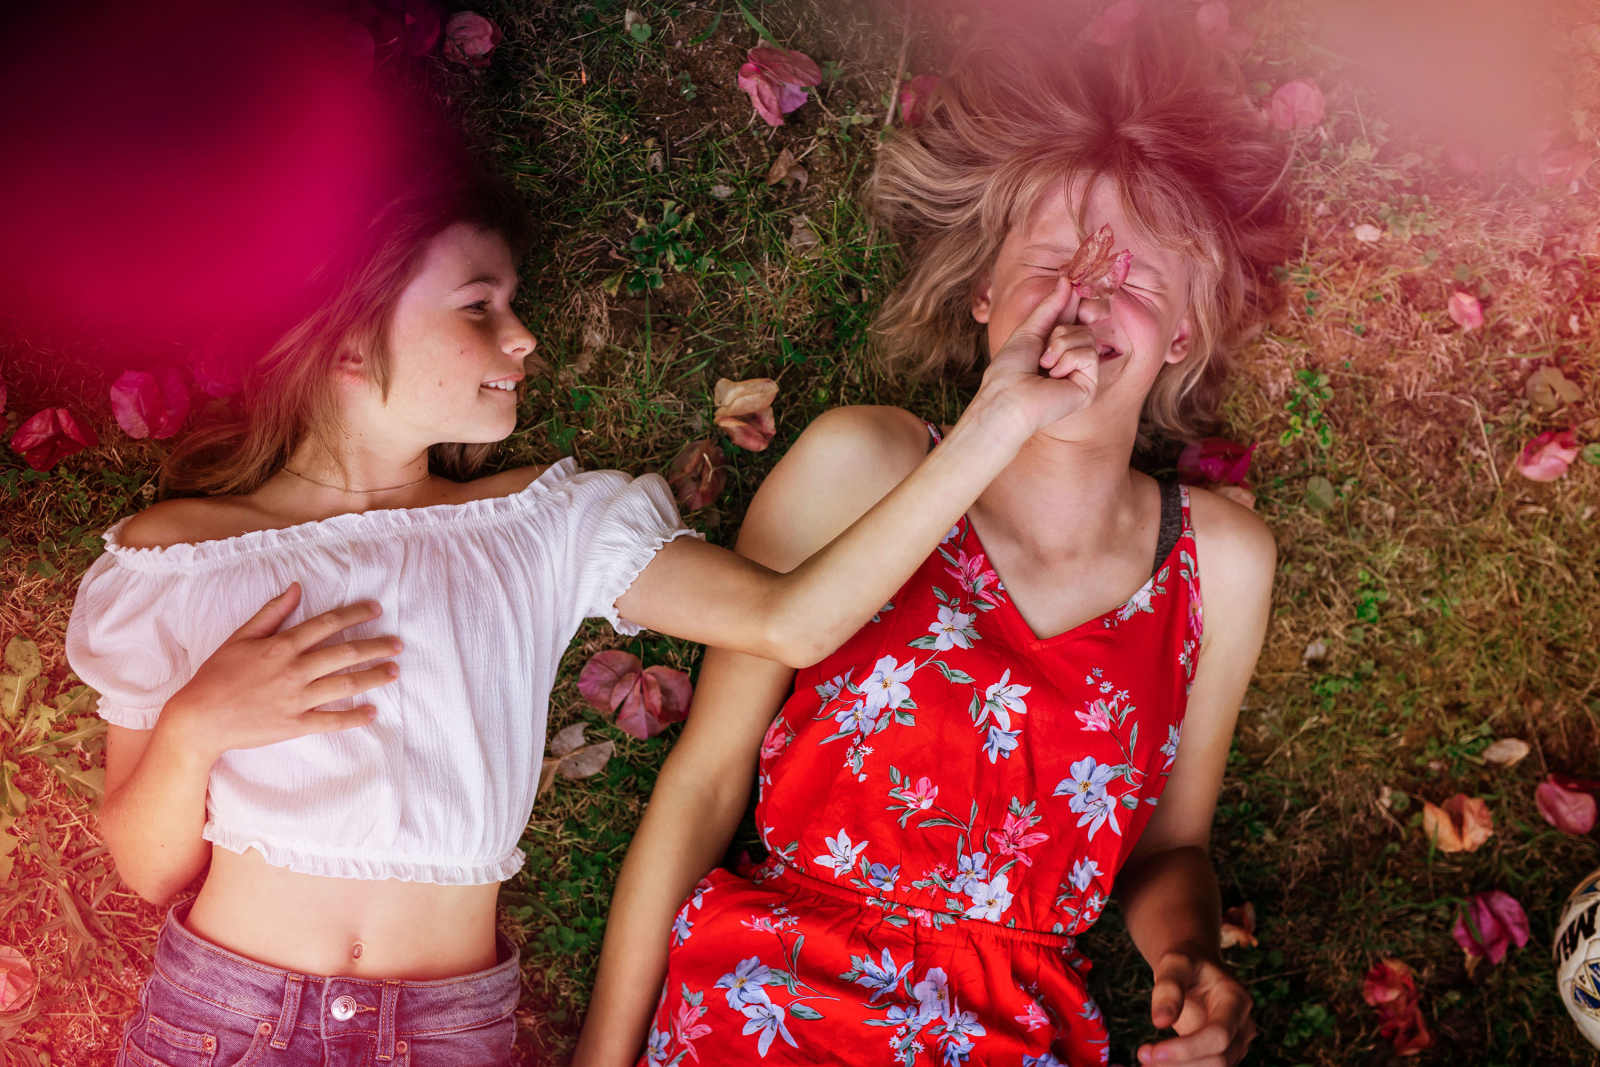 An image capturing the vibrance of summer and the passage of time wins the Spotlight Awards Kids category: Meet Sacha Stejko, the photographer behind it